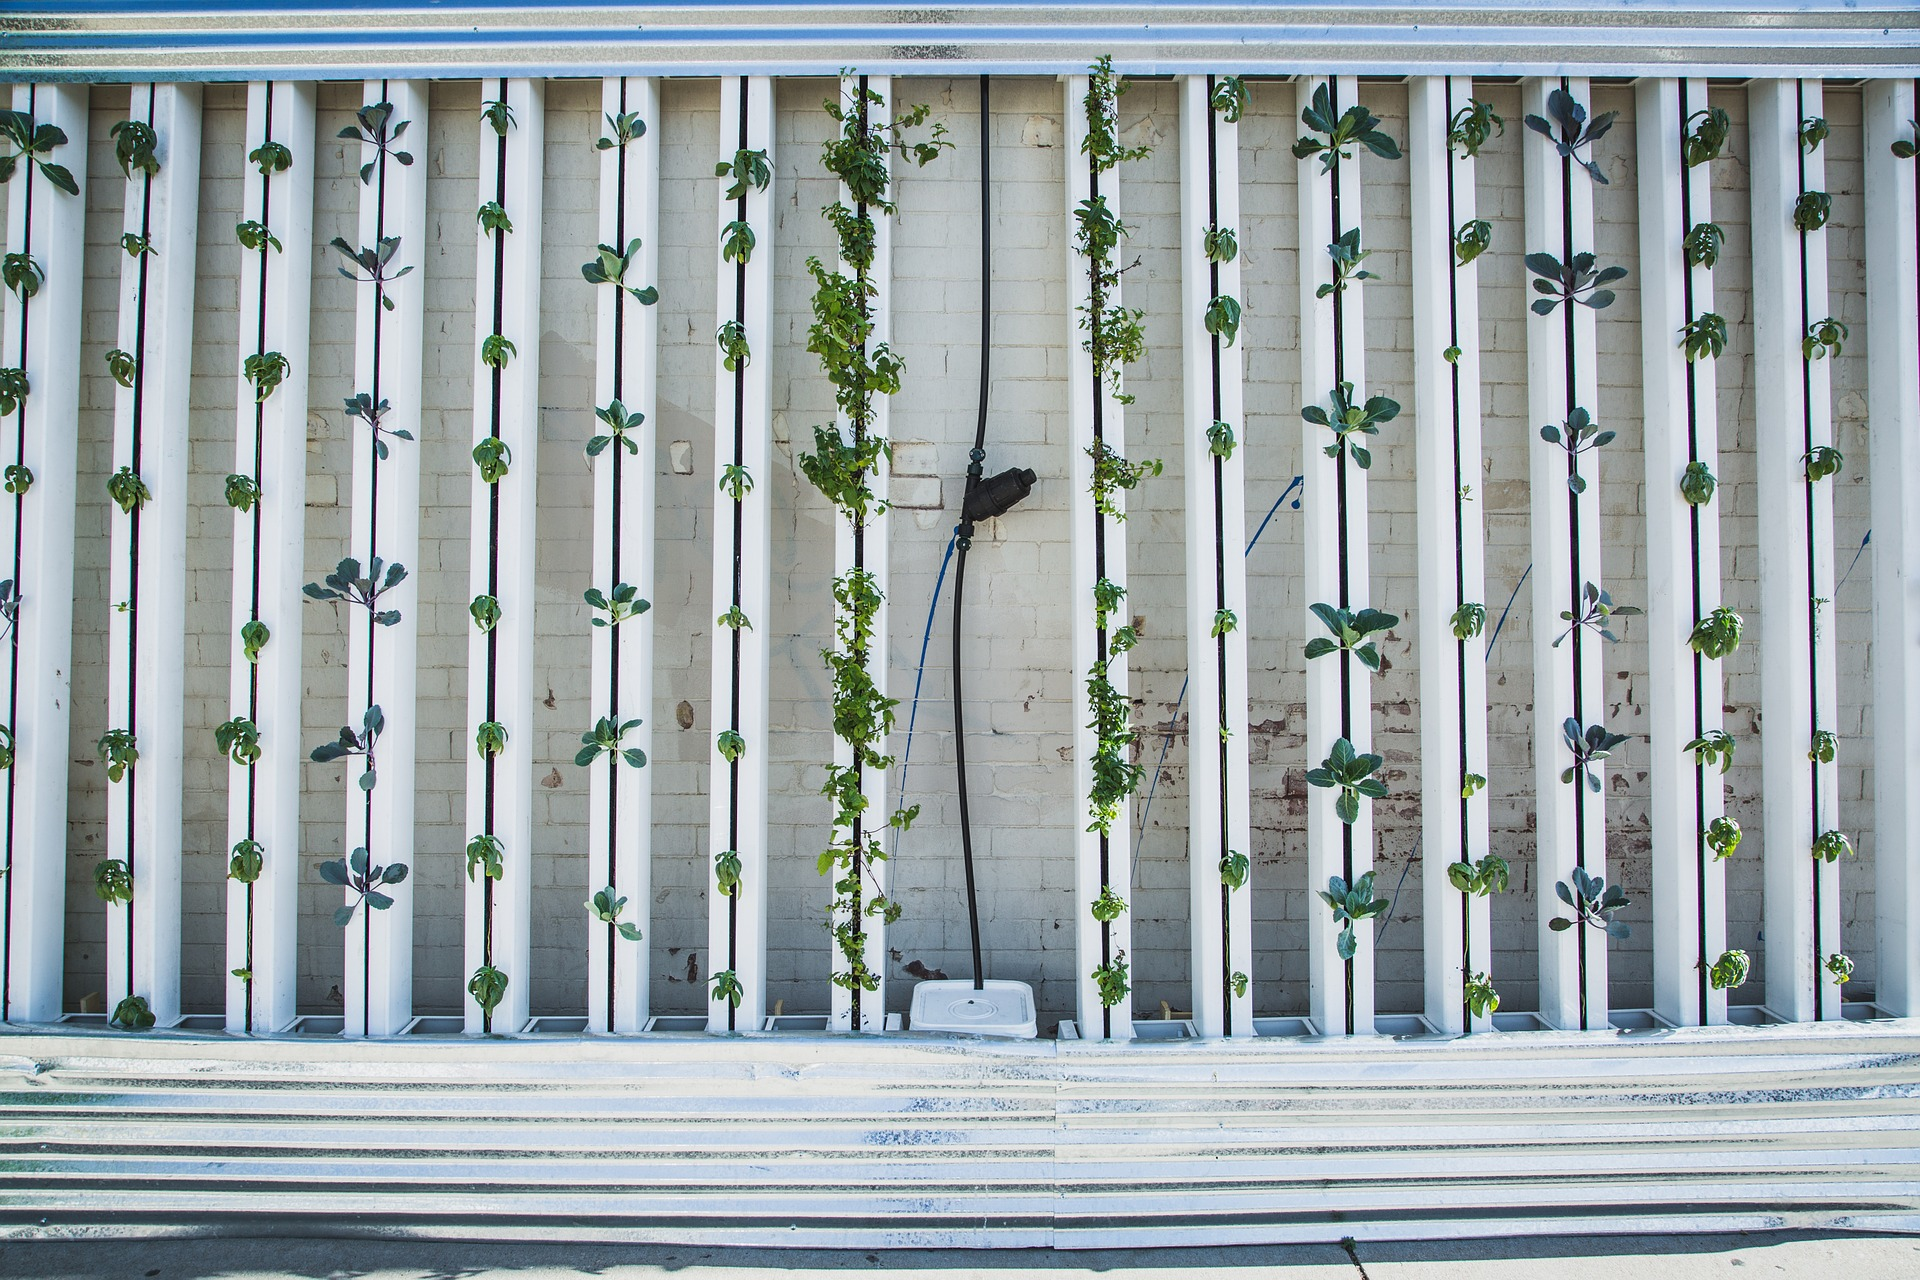 hydroponics or verticle farming